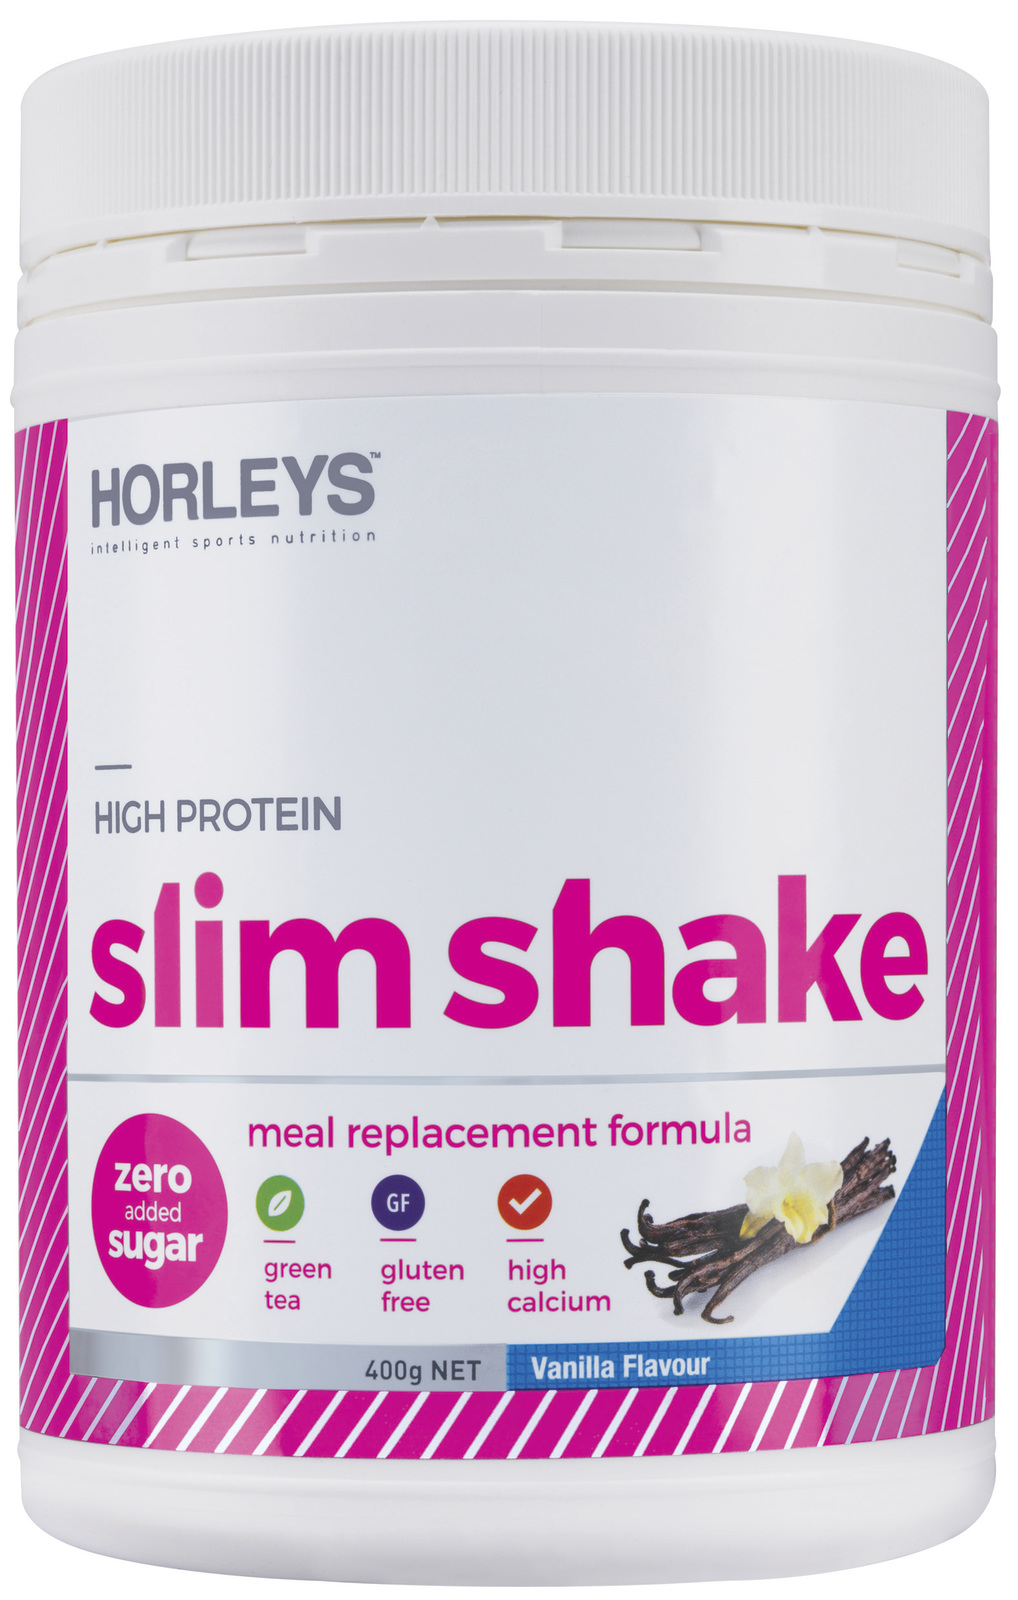 Horleys Slim Shake Protein Powder image